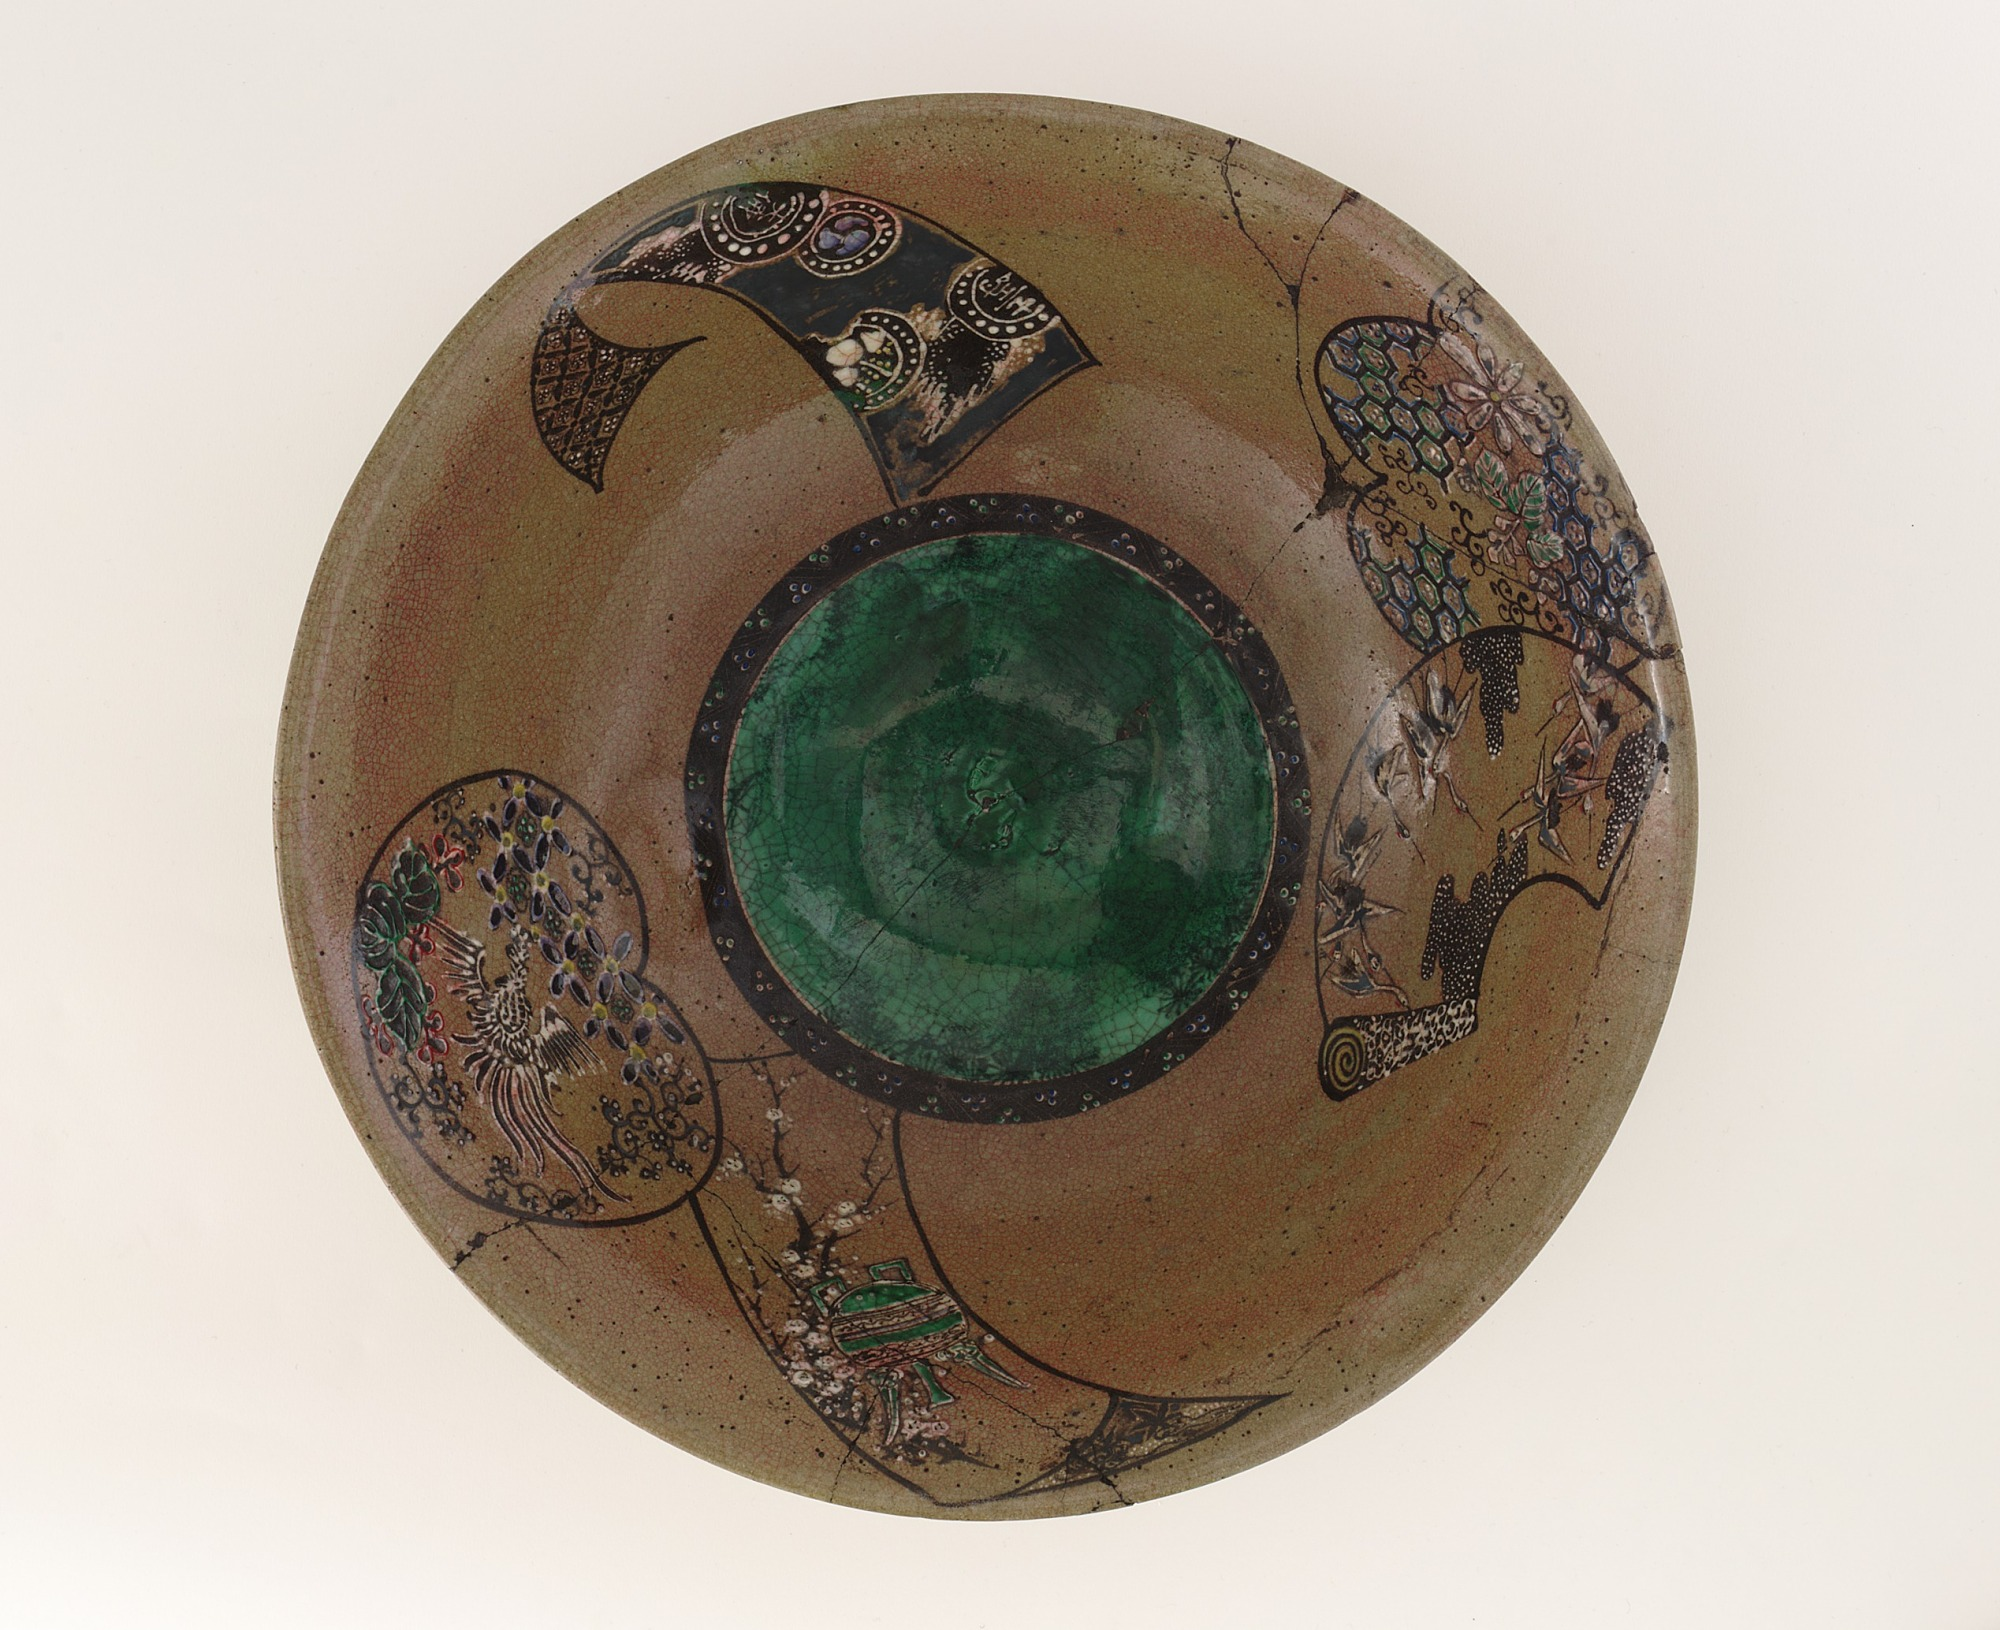 interior: Bowl with design of auspicious motifs